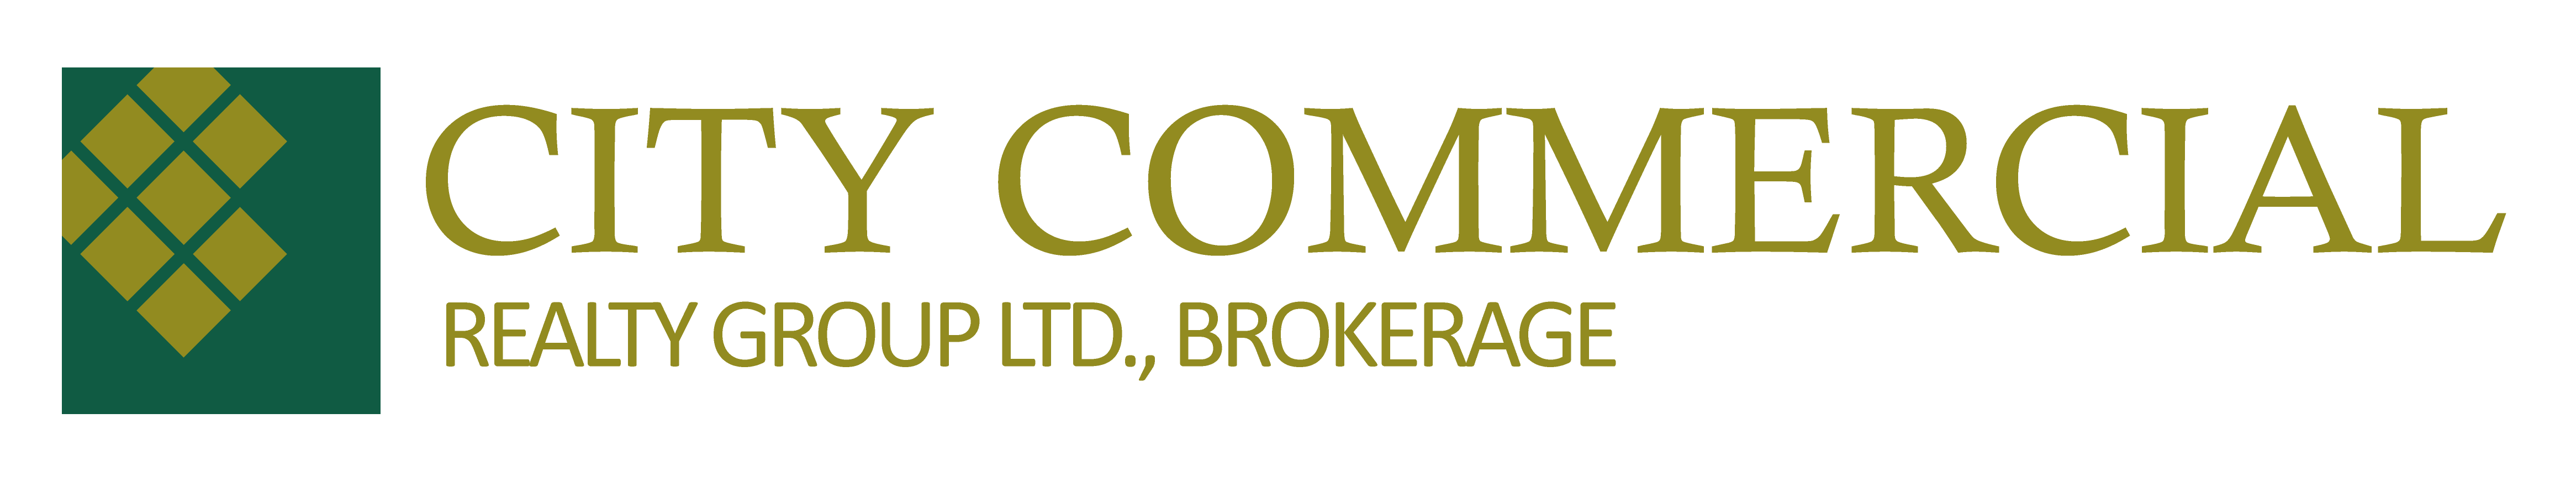 City Commercial Realty Group Ltd., Brokerage*